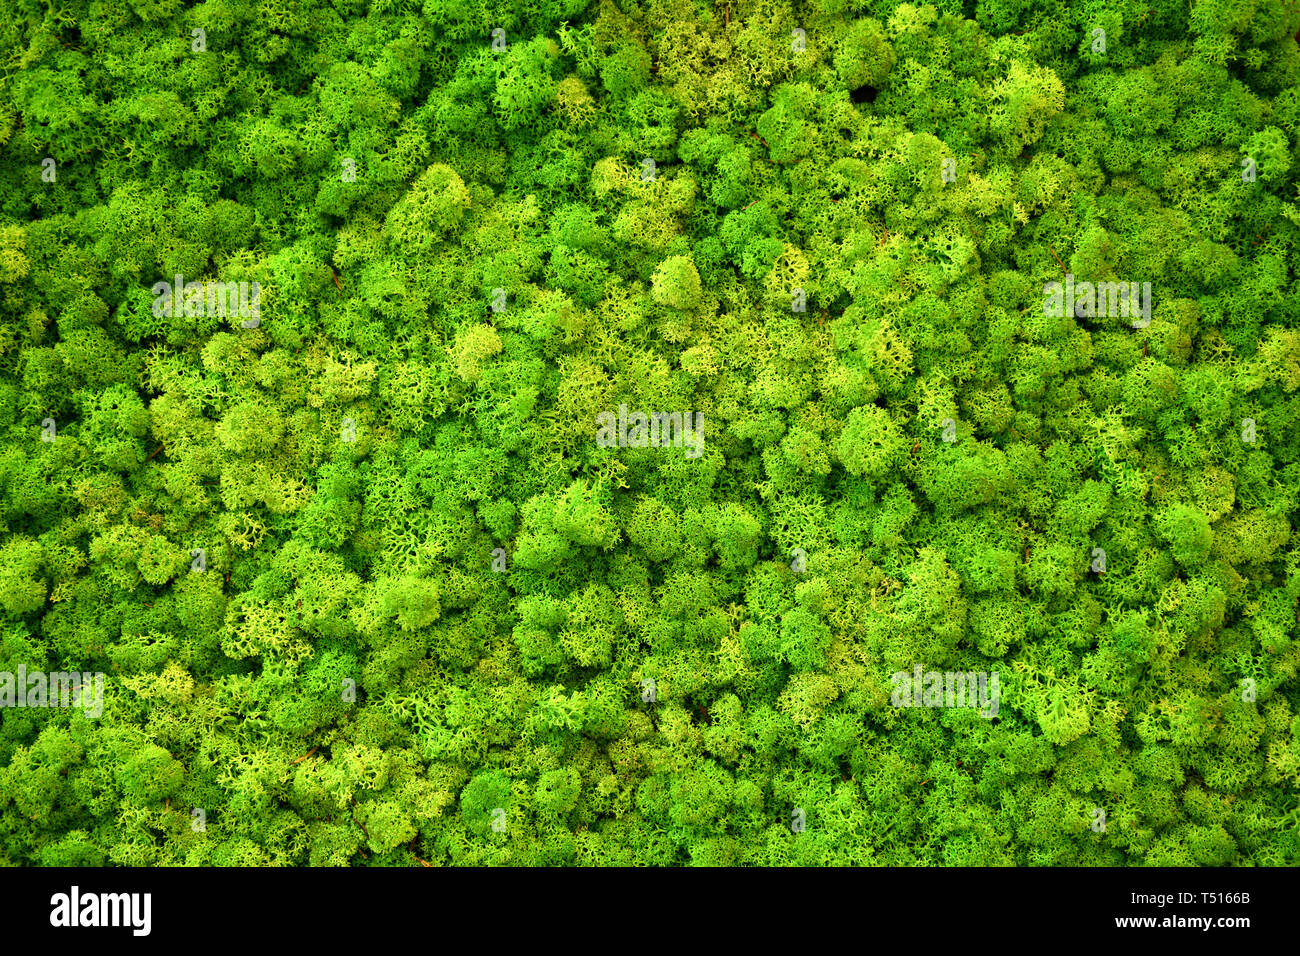 Full frame of light green Finland moss in close-up. Vivid natural color background concept - Stock Image